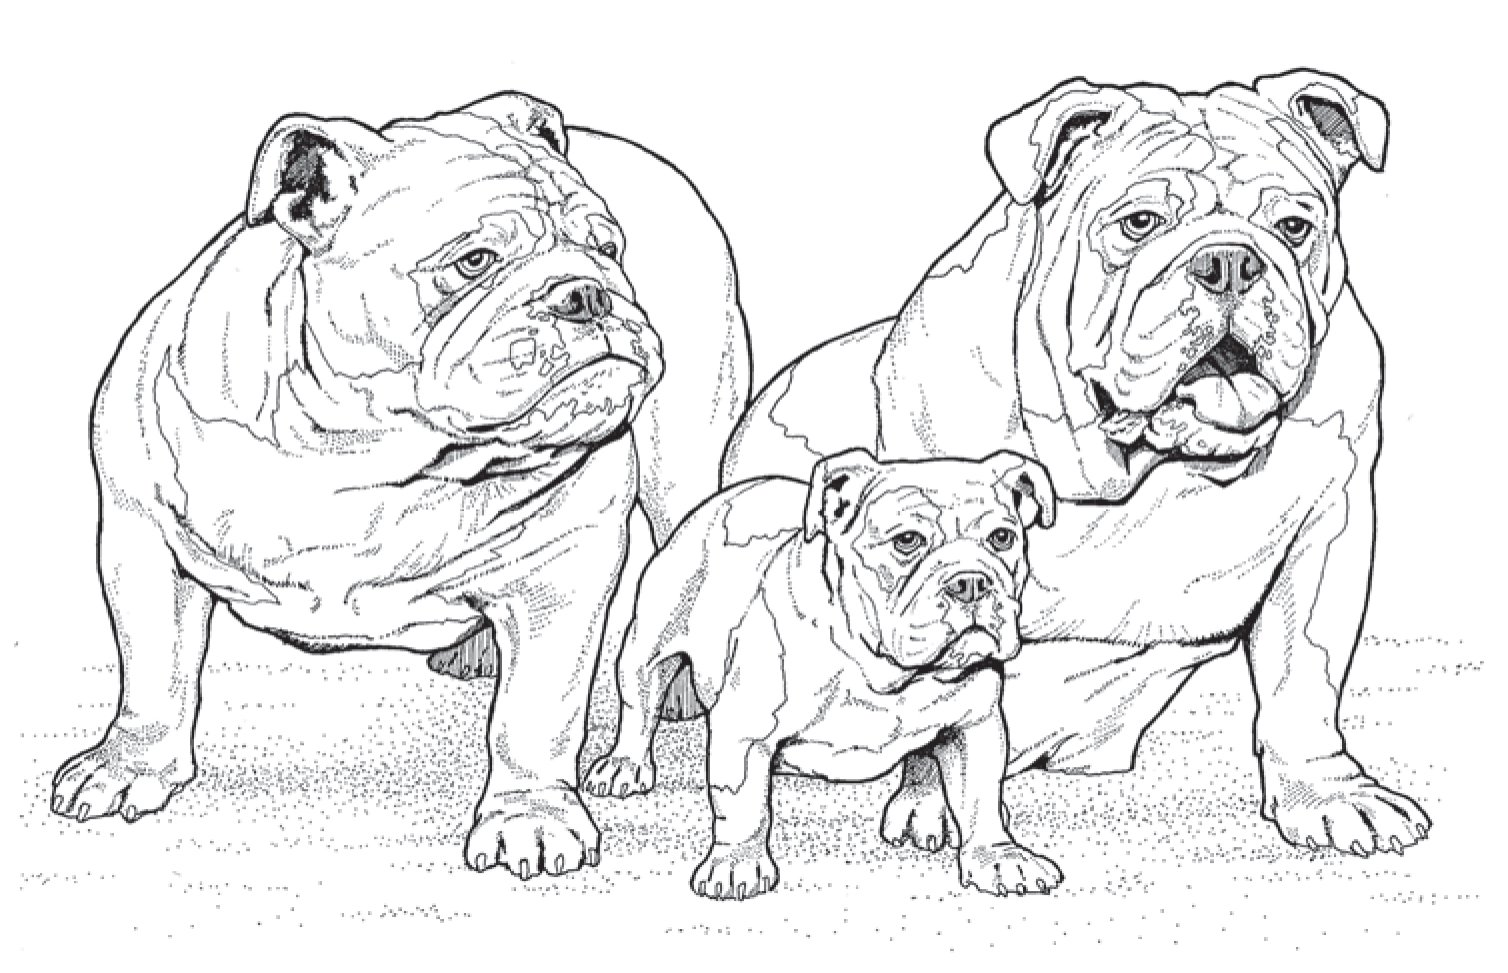 10 New Adult Coloring Books for Dog Lovers to Help Get Your Chill ...